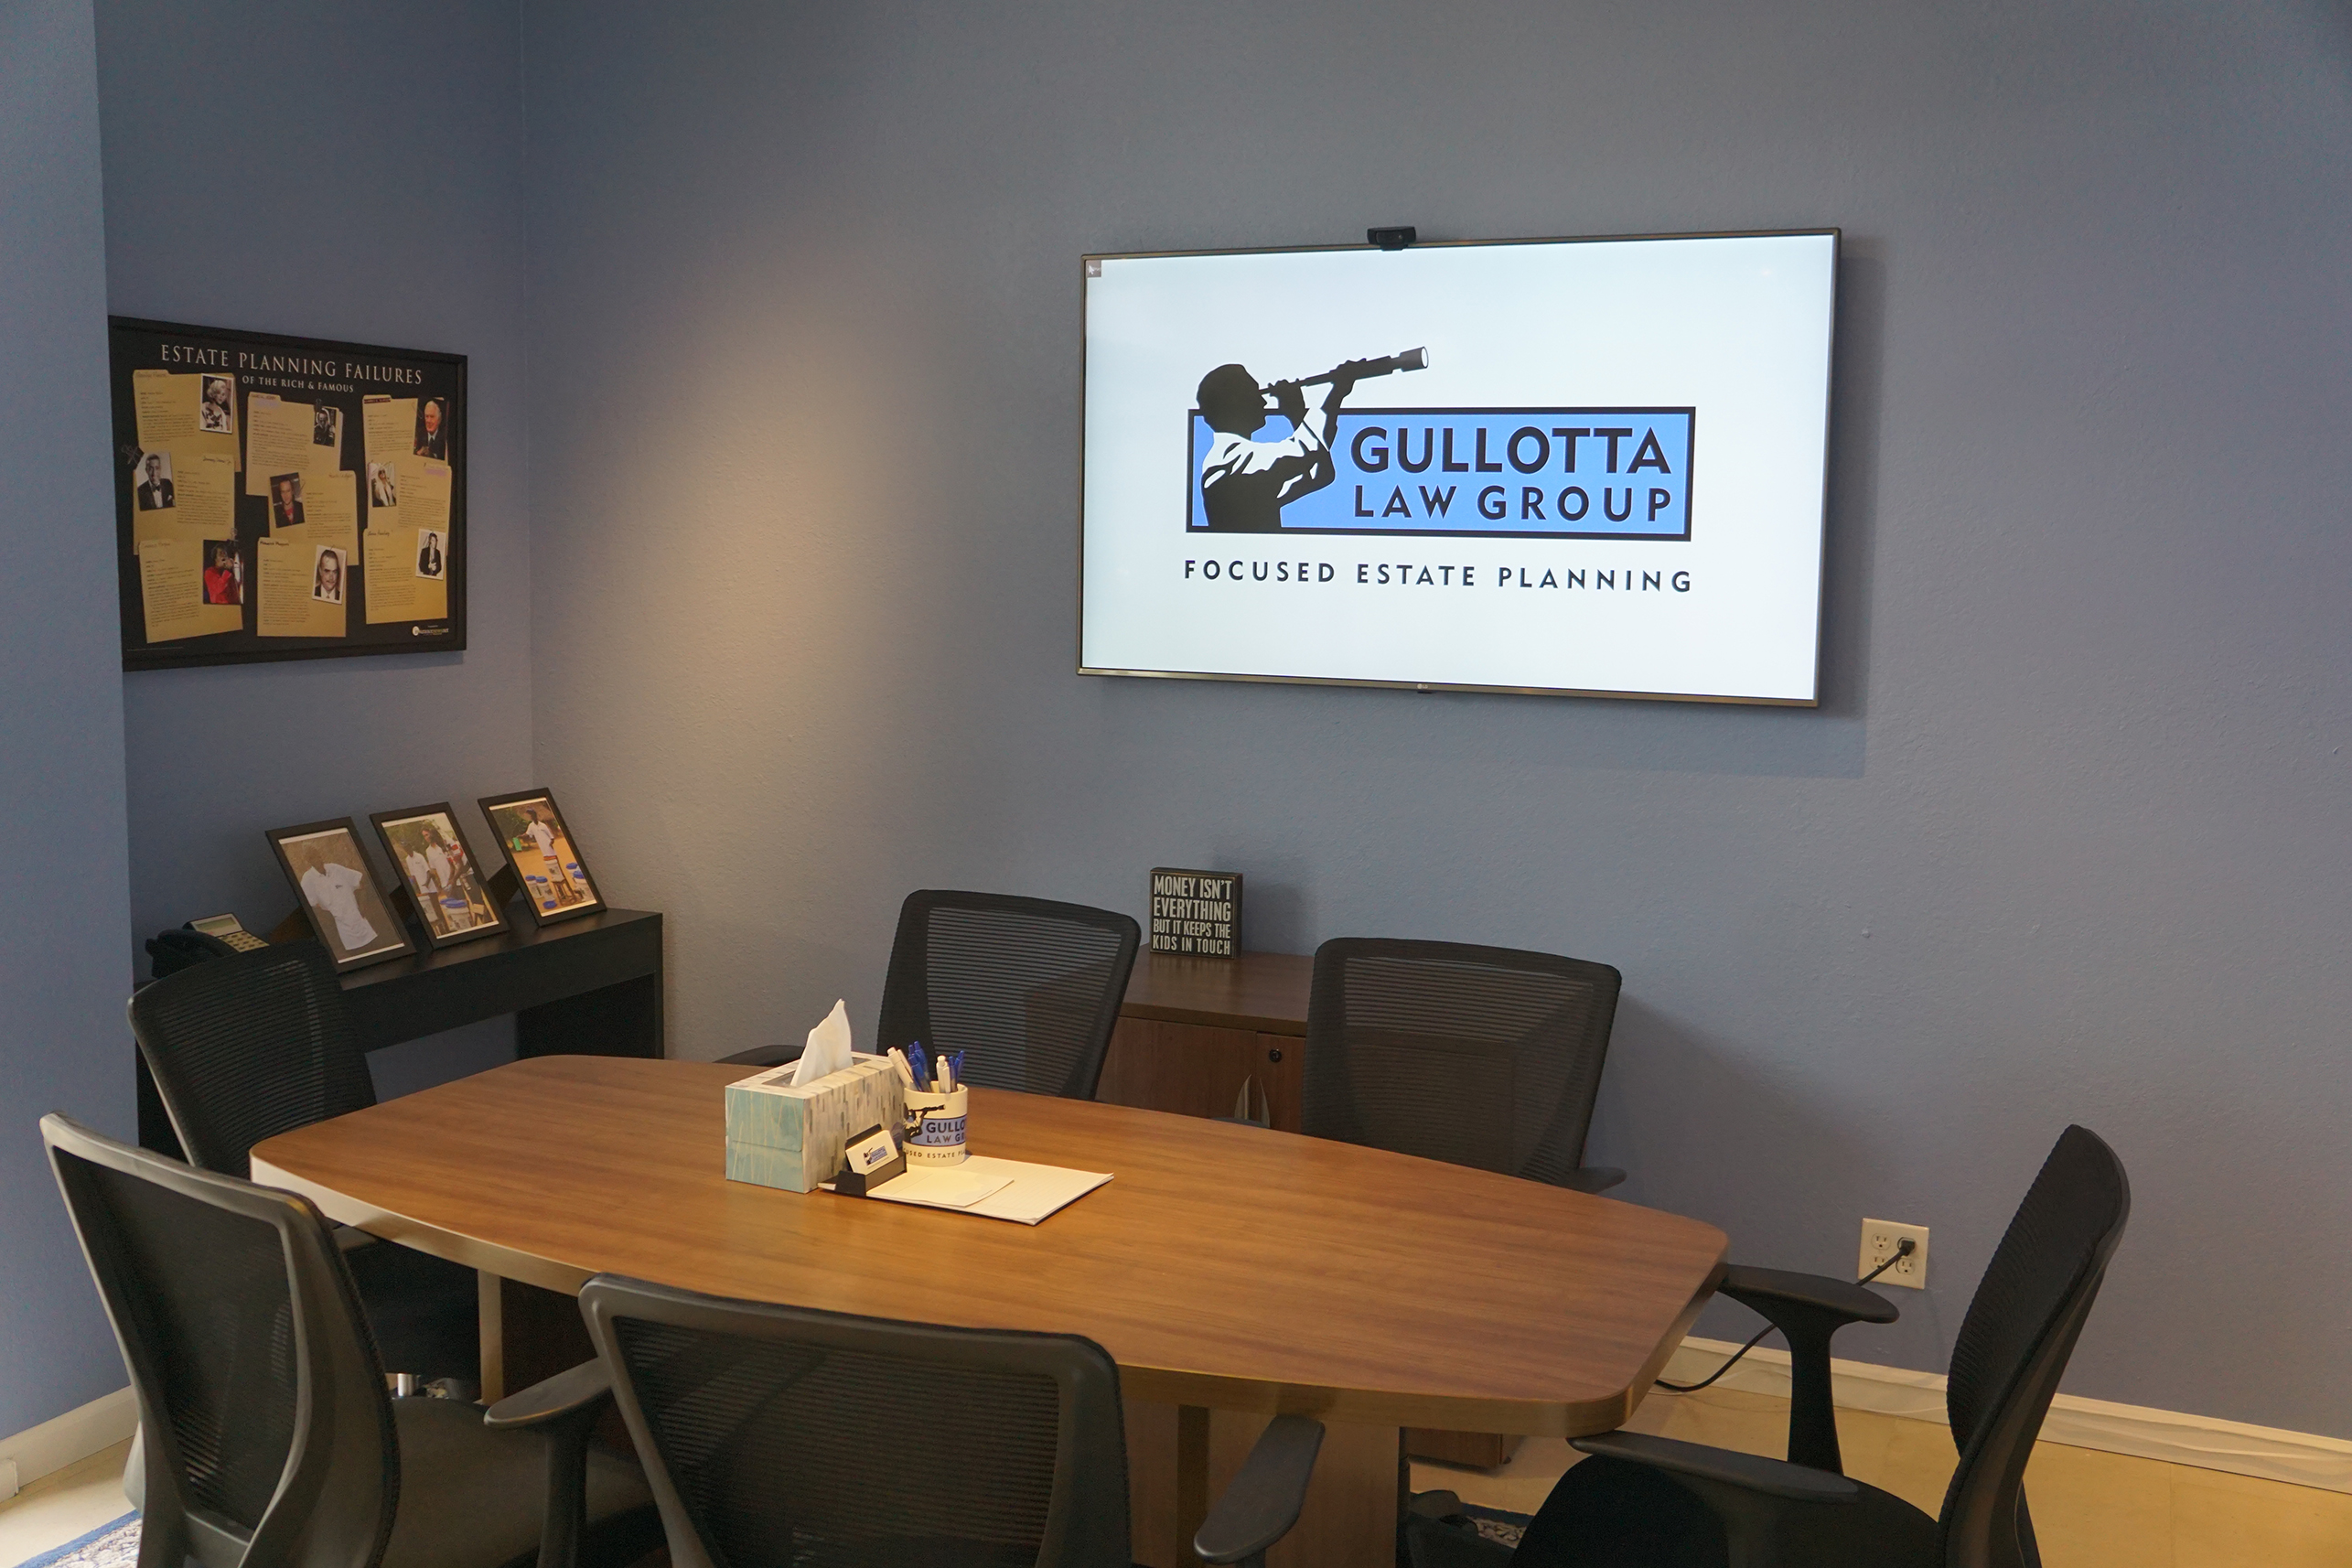 Gullotta Law Group Conference Room